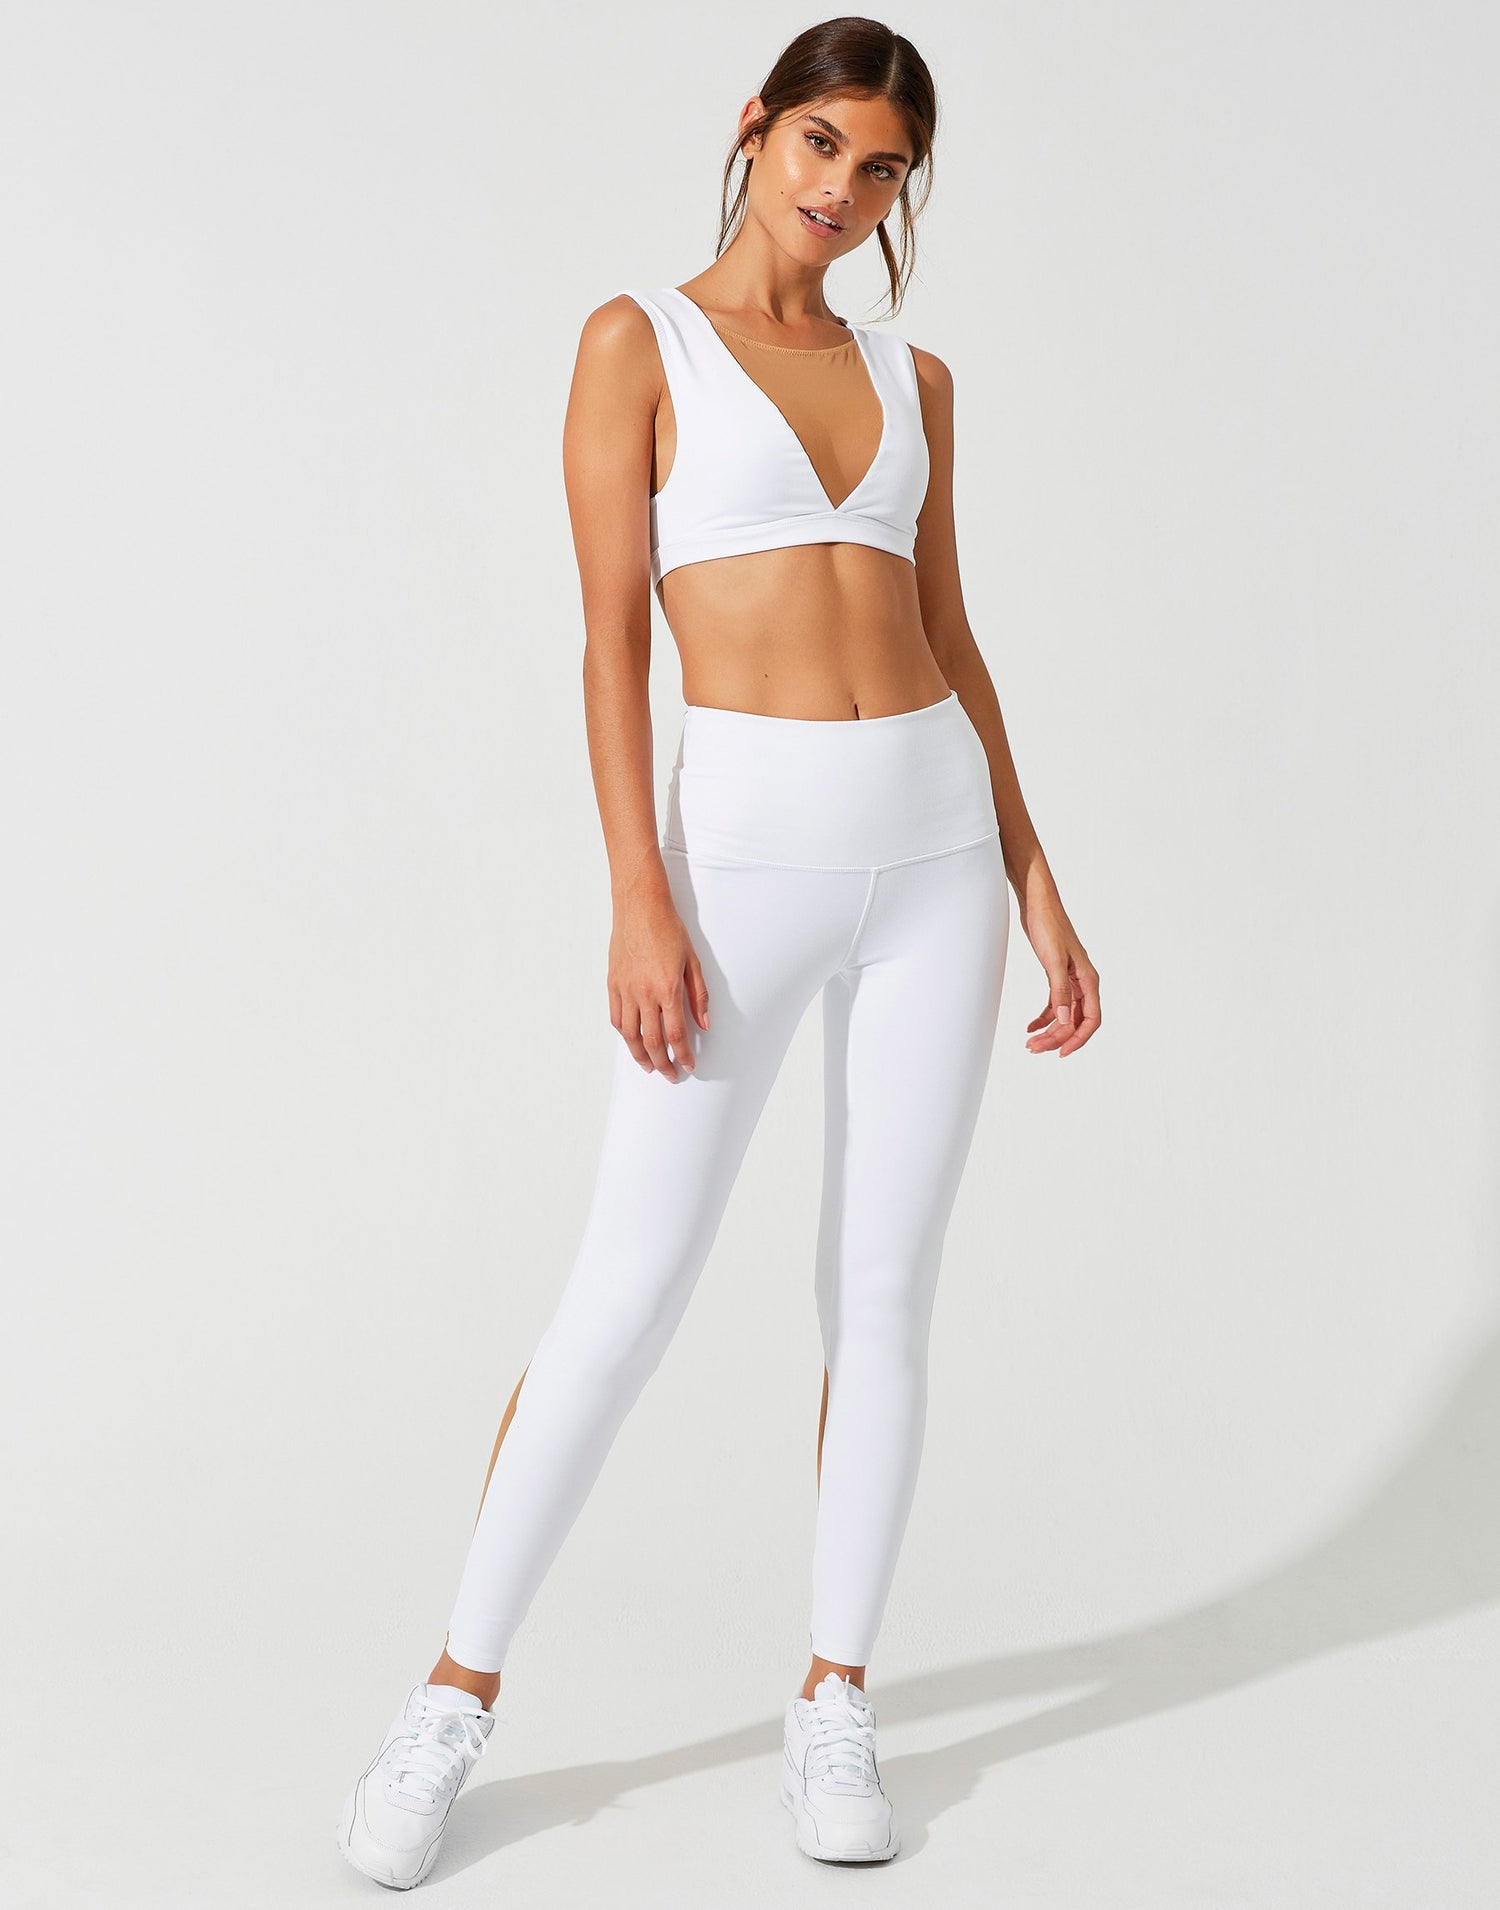 Chloe Crop Top in White with Nude Mesh Color-Block - front view